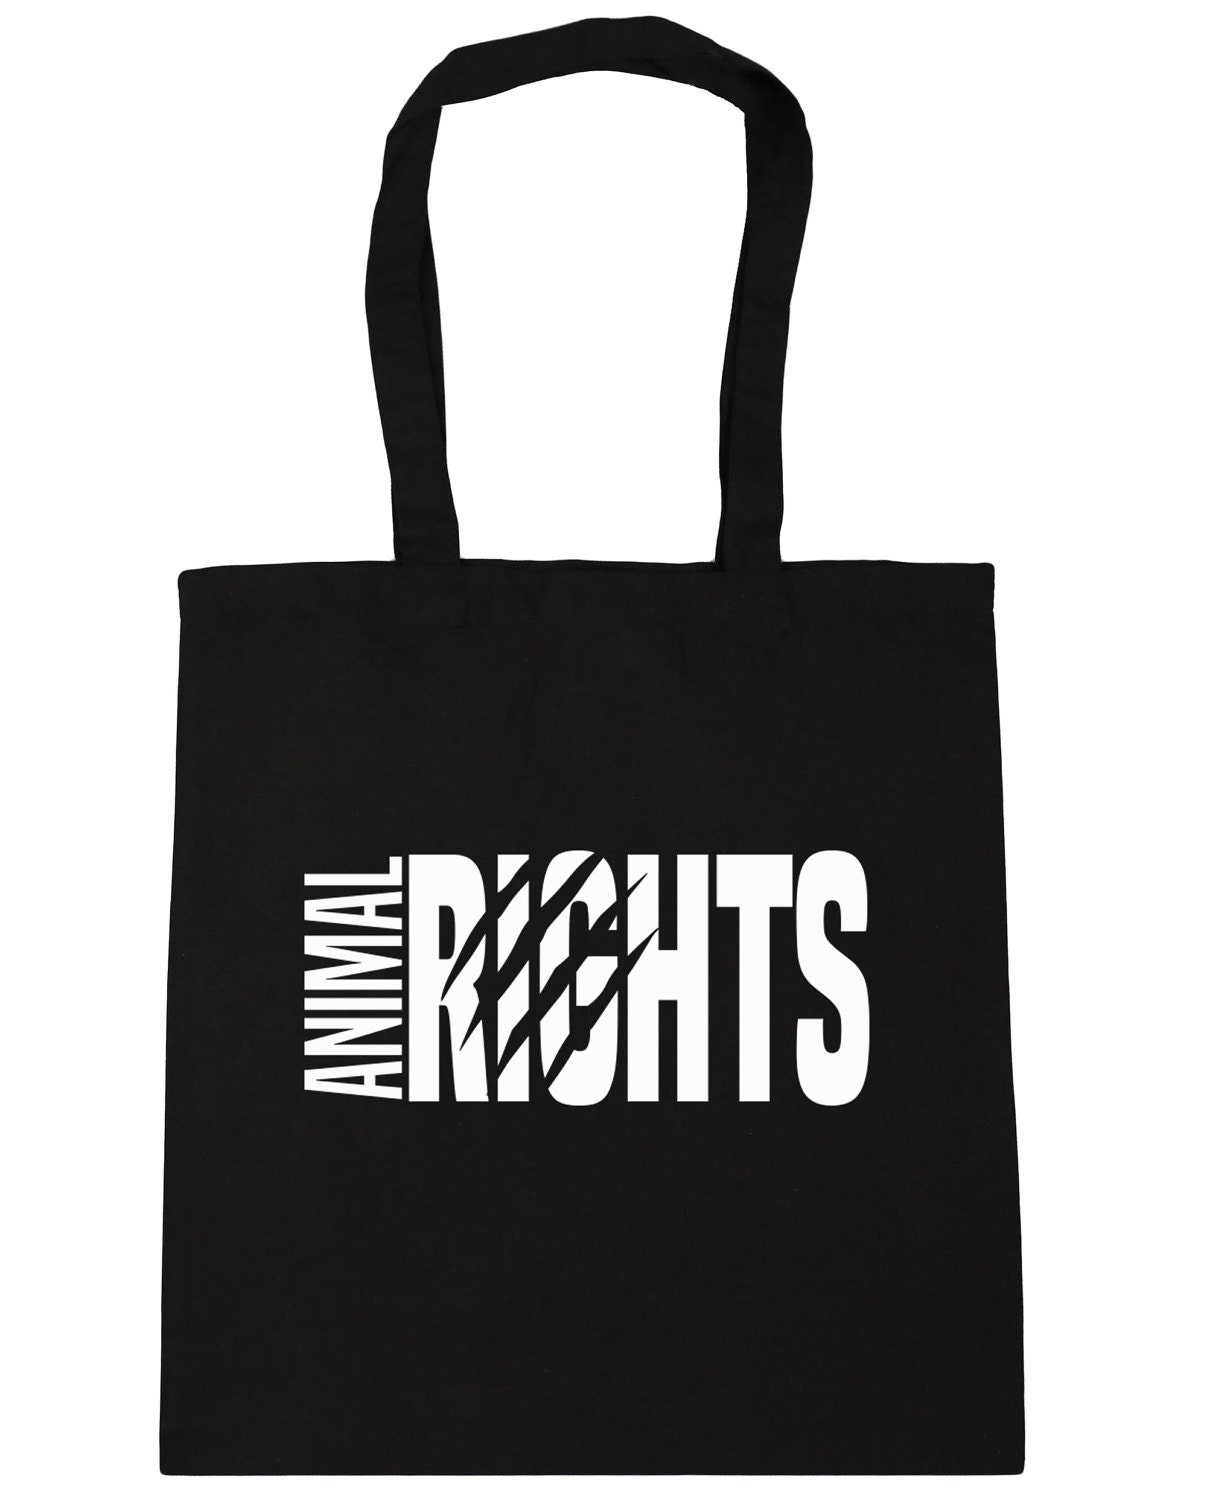 Animal Rights Tote Shopping Gym Beach Bag 42cm x38cm 10 litres